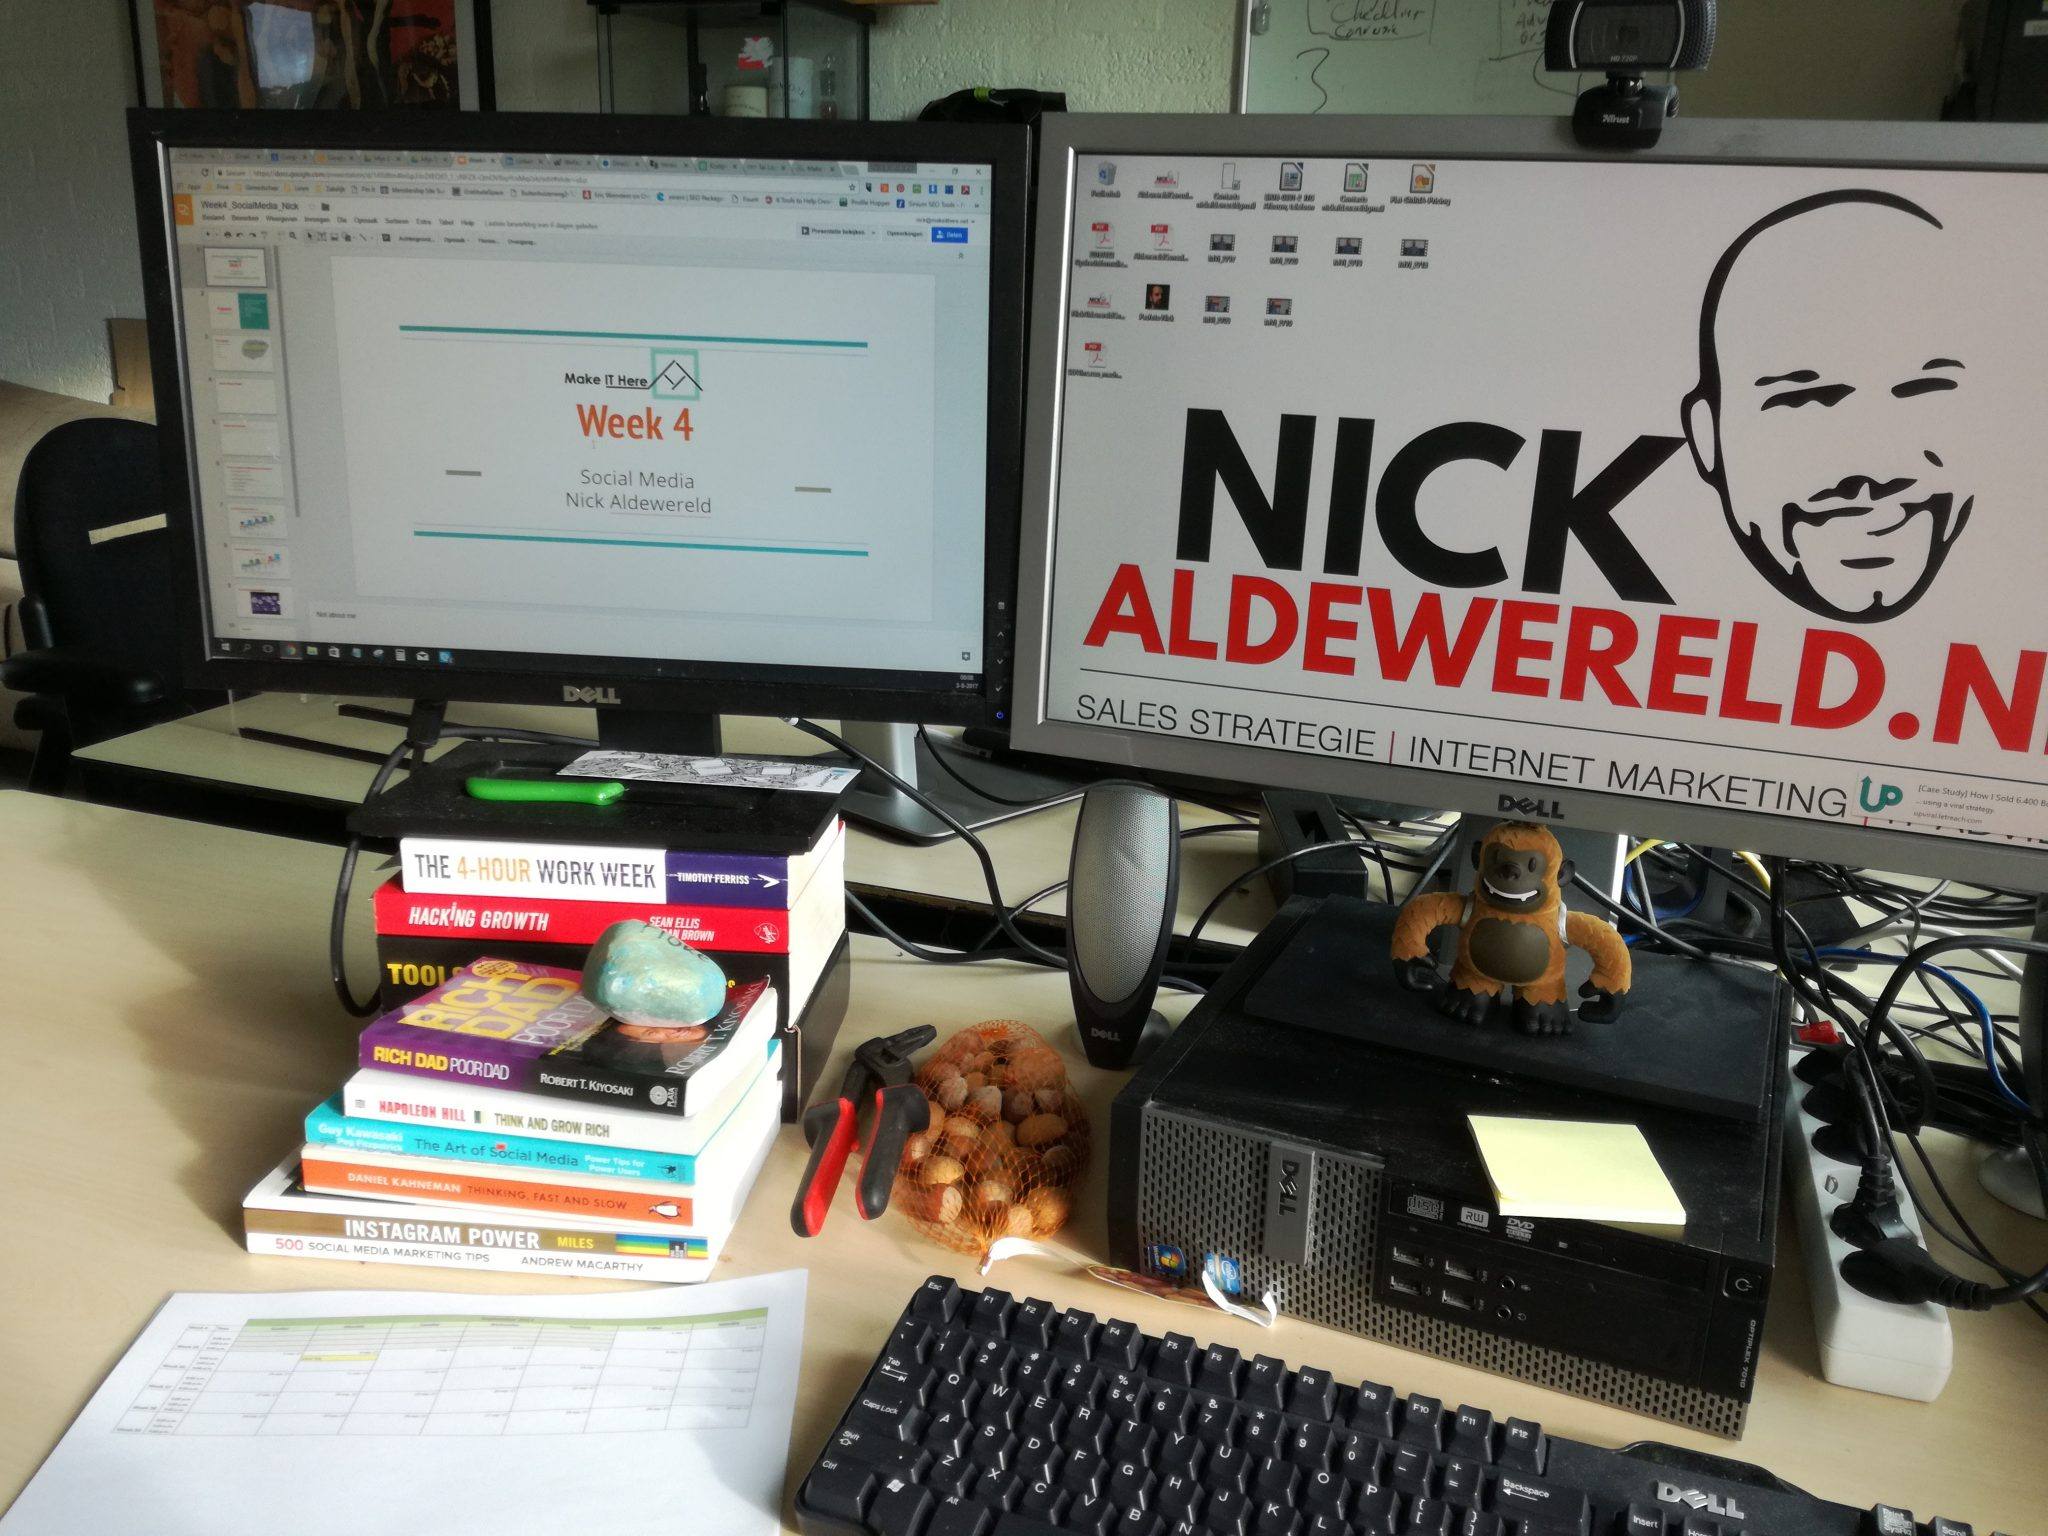 bureau computer online marketing nick aldewereld consultancy